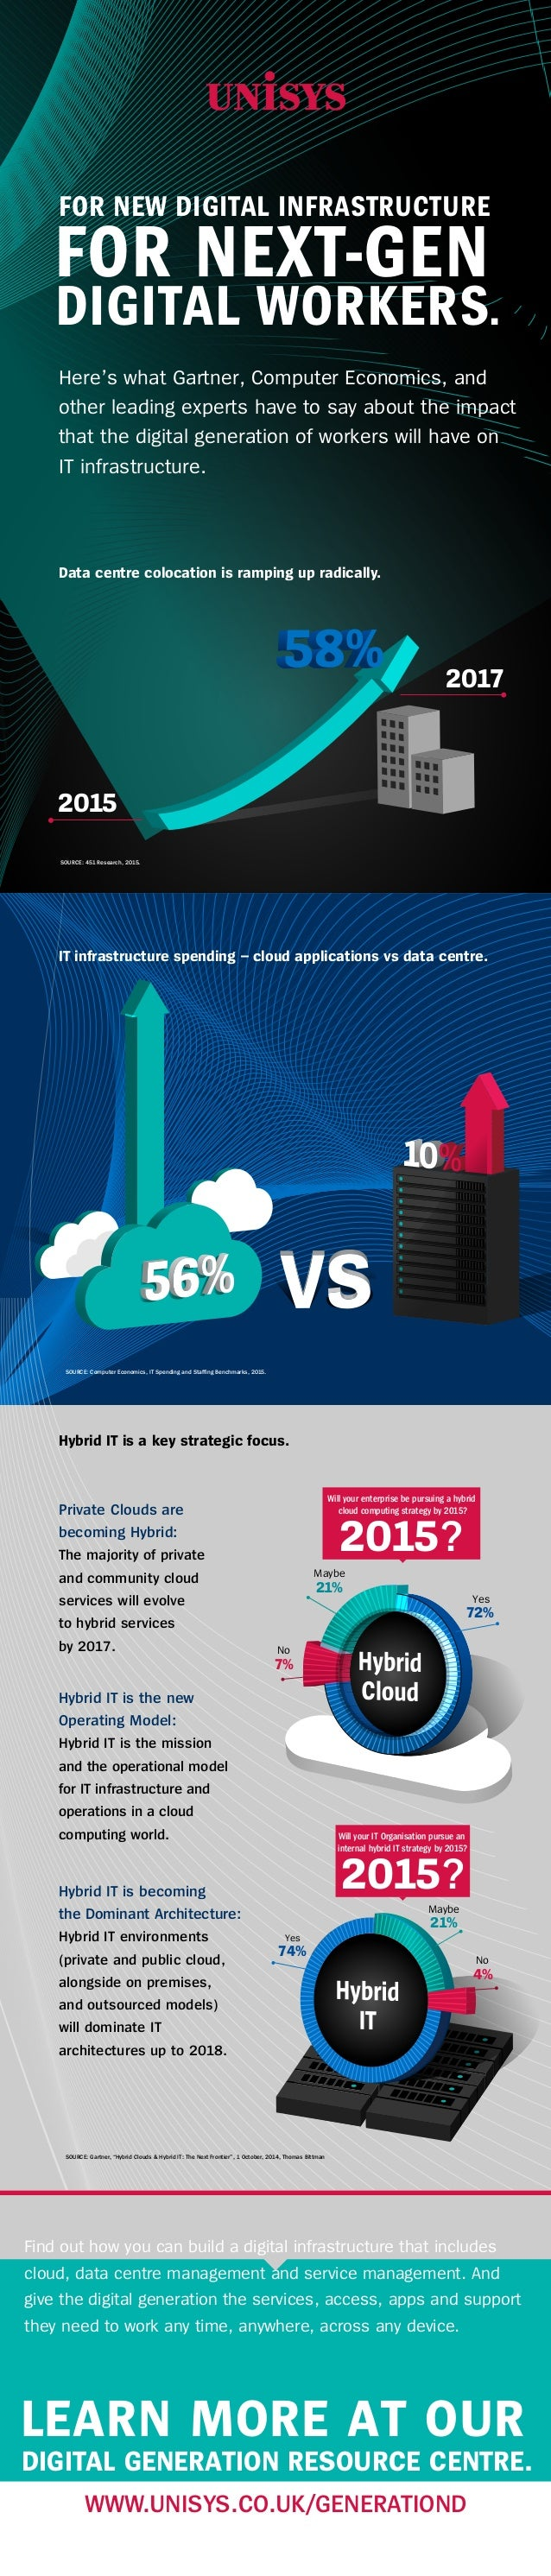 Data centre colocation is ramping up radically. IT infrastructure spending – cloud applications vs data centre. 2015 2017 ...